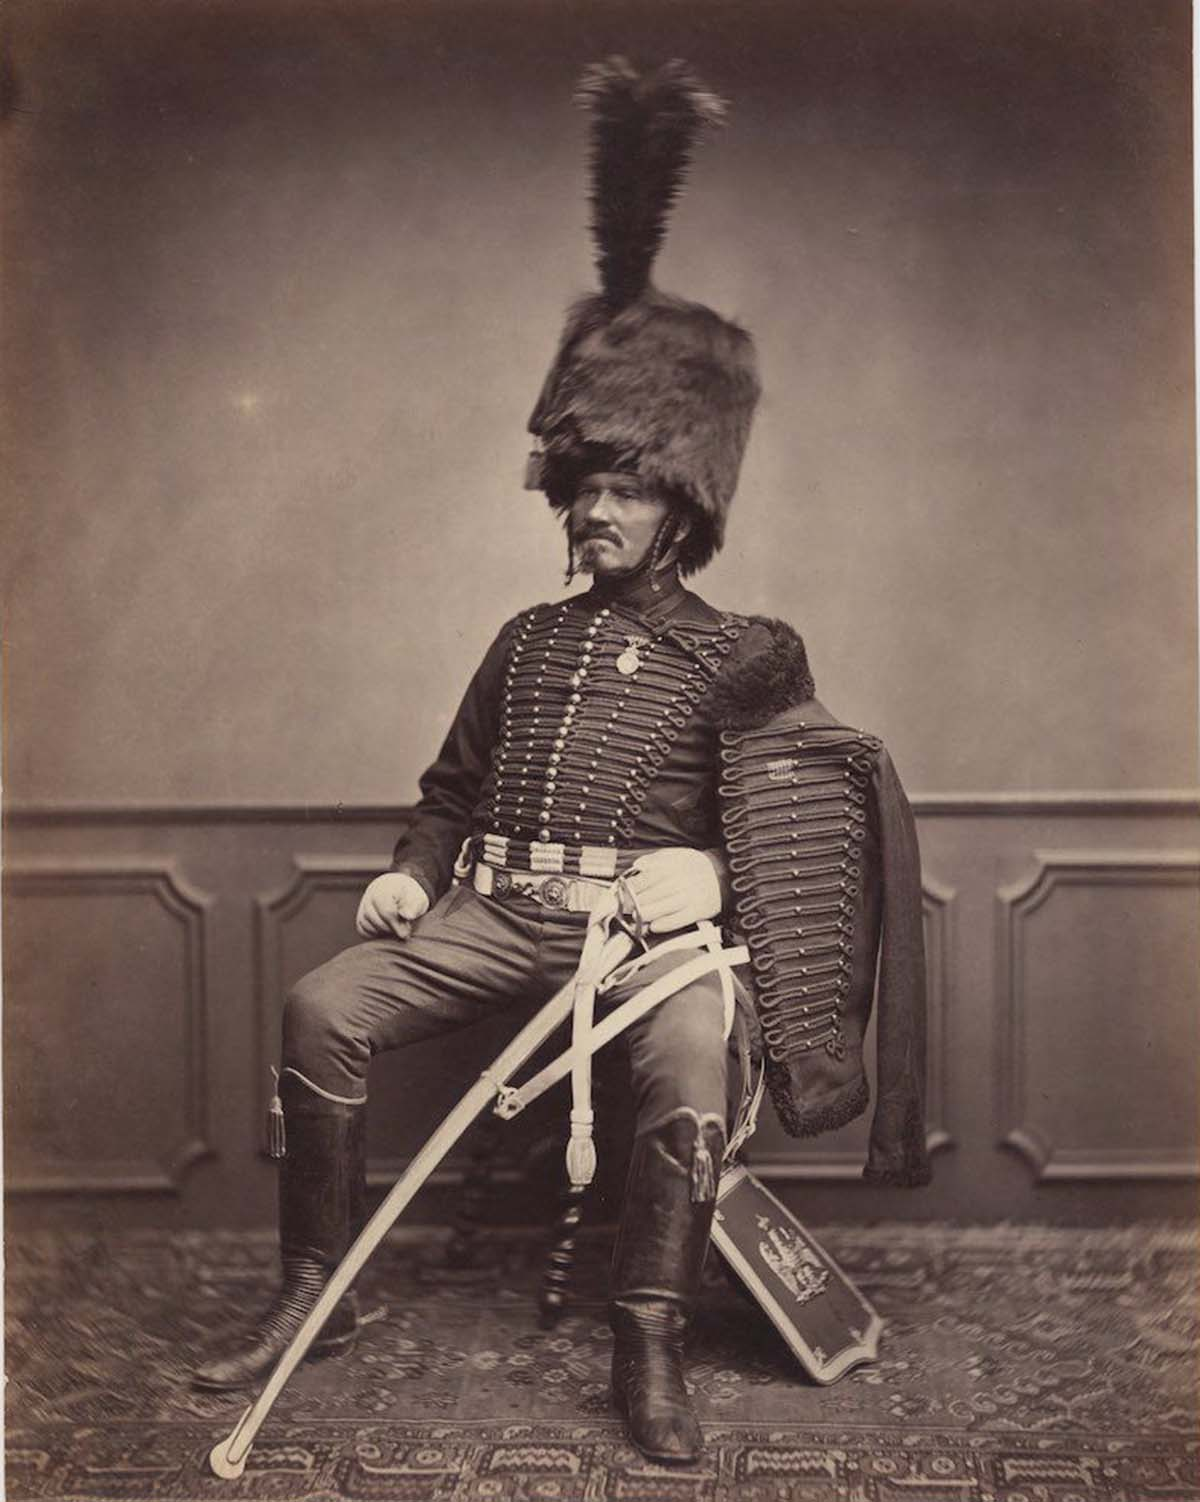 Pictured in his grand hussar uniform is Monsieur Moret of the 2nd Regiment, 1814-1815.